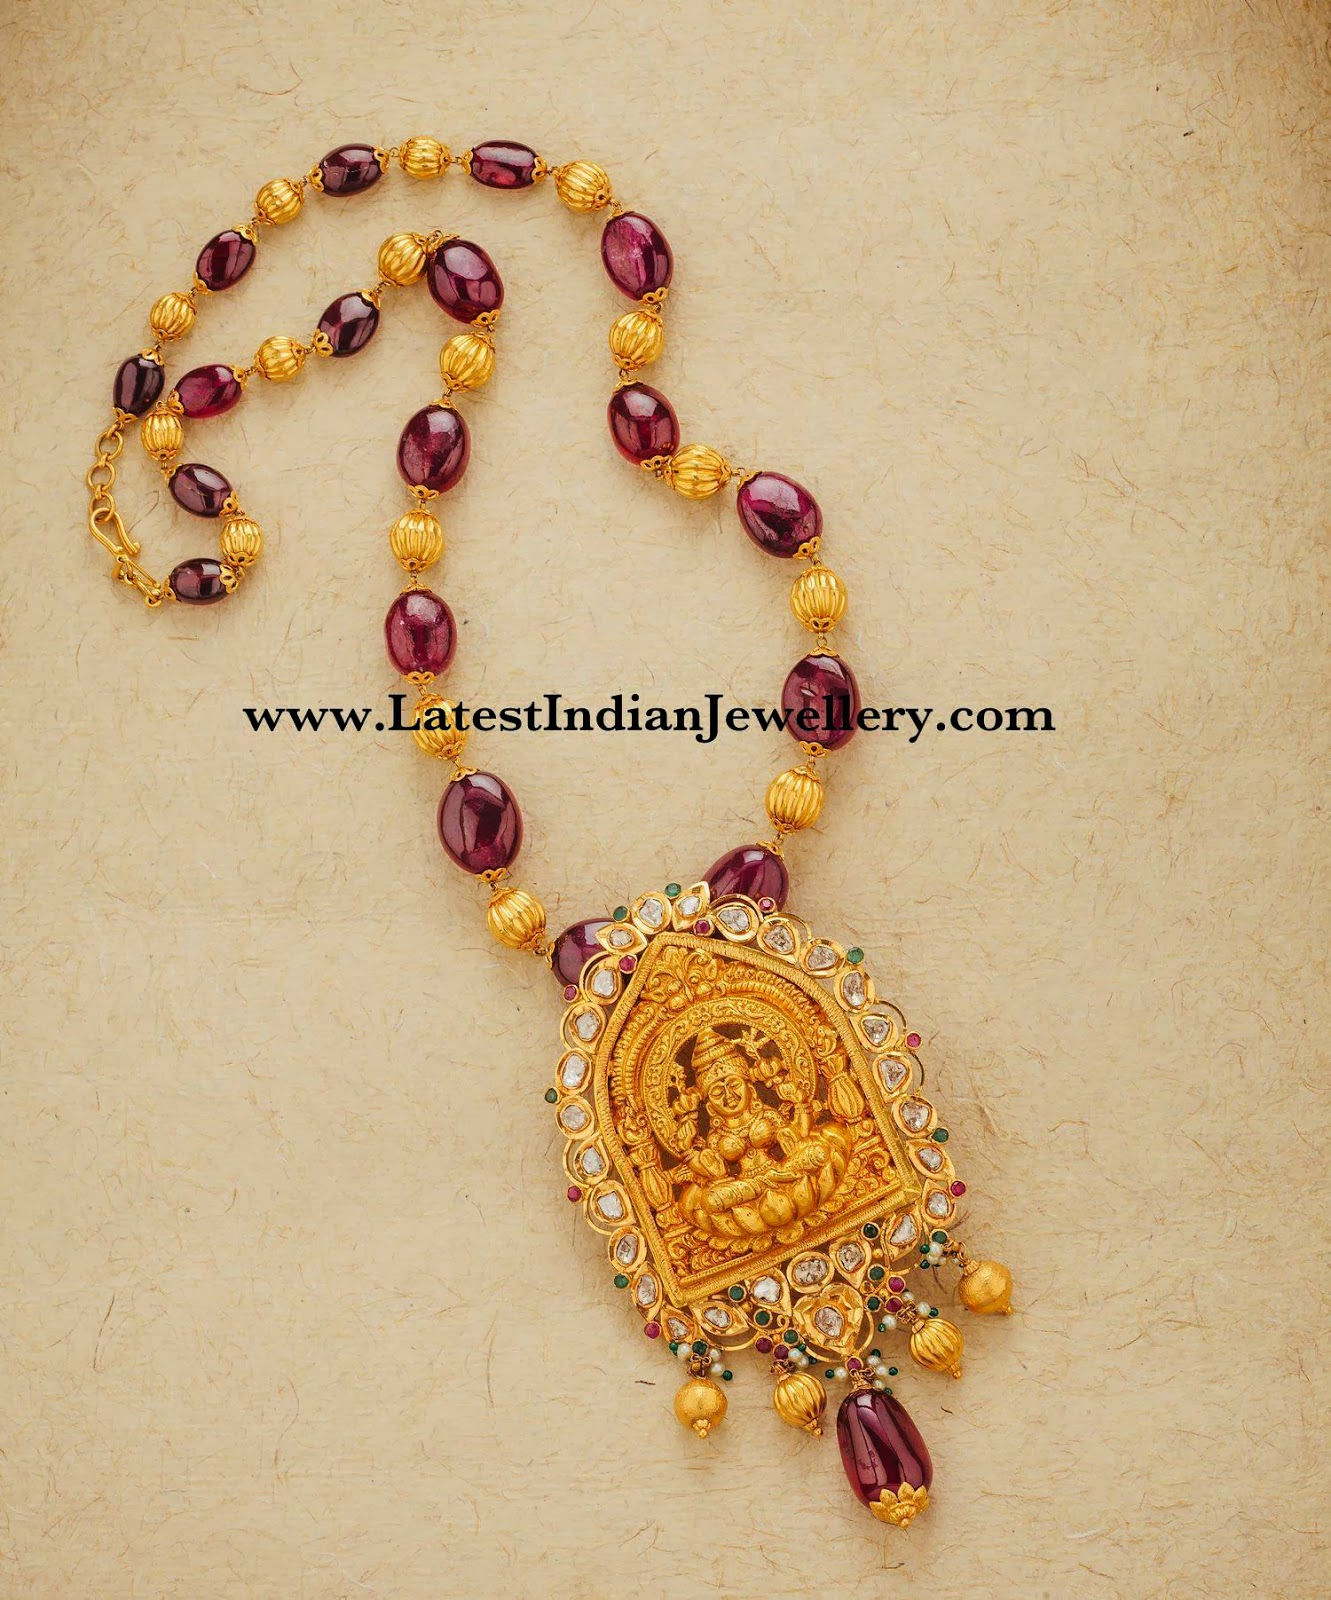 Temple Jewellery with Ruby Beads